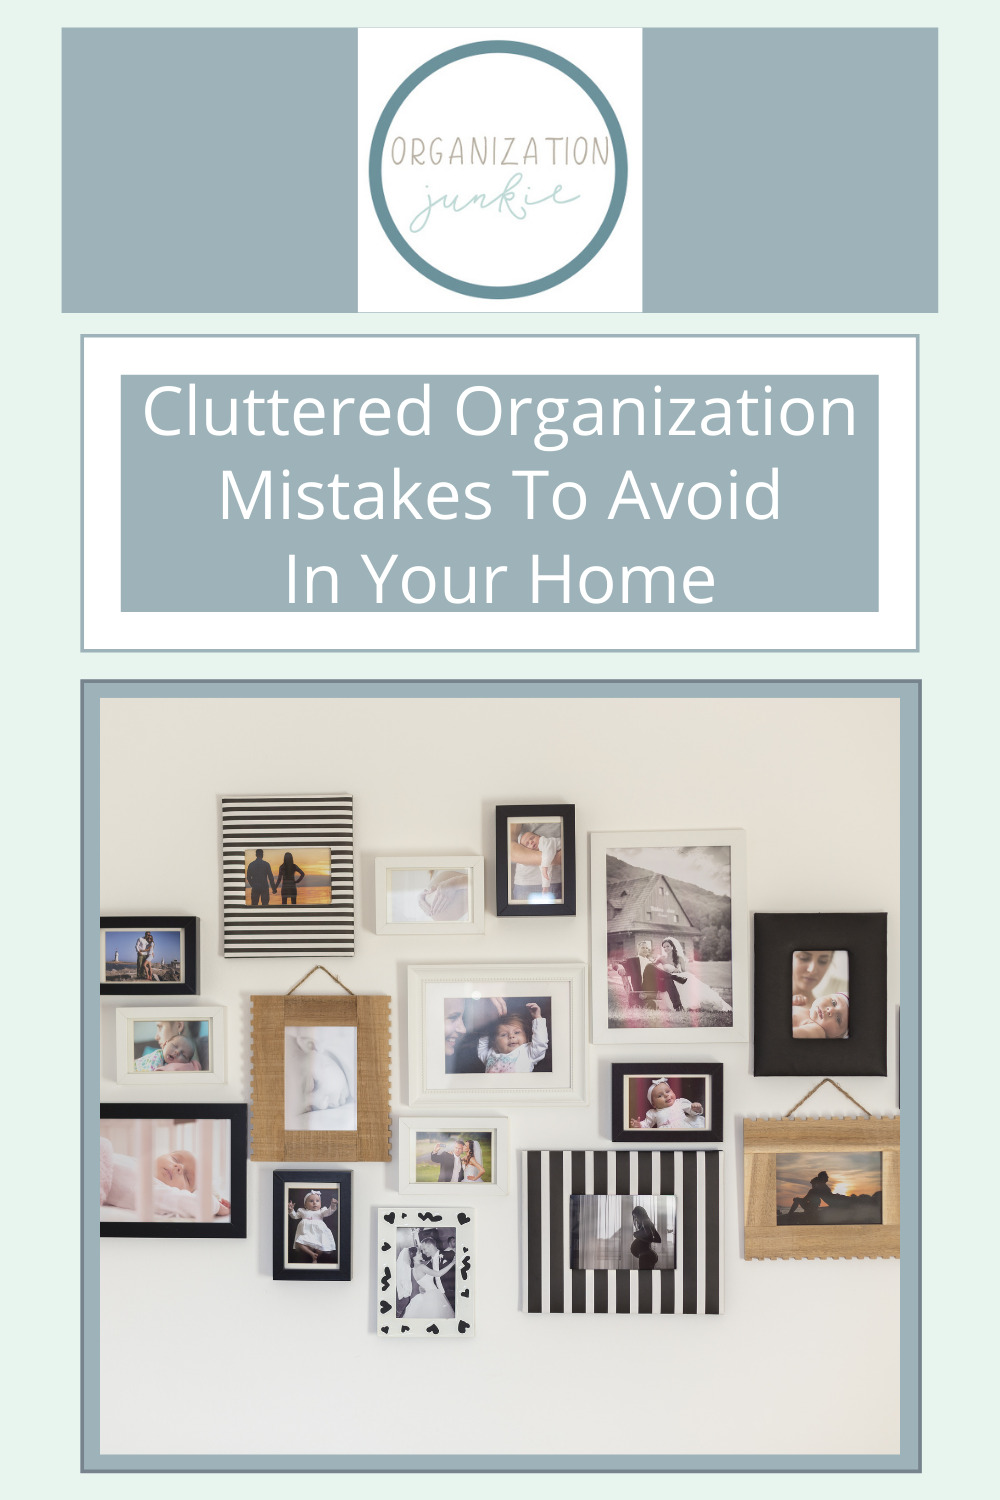 Organizationjunkie.com is the place to go for simple and effective organization ideas! Stop letting your clutter build up and tackle those messes today. Before you get started, make sure to check these cluttered organization mistakes you need to avoid.